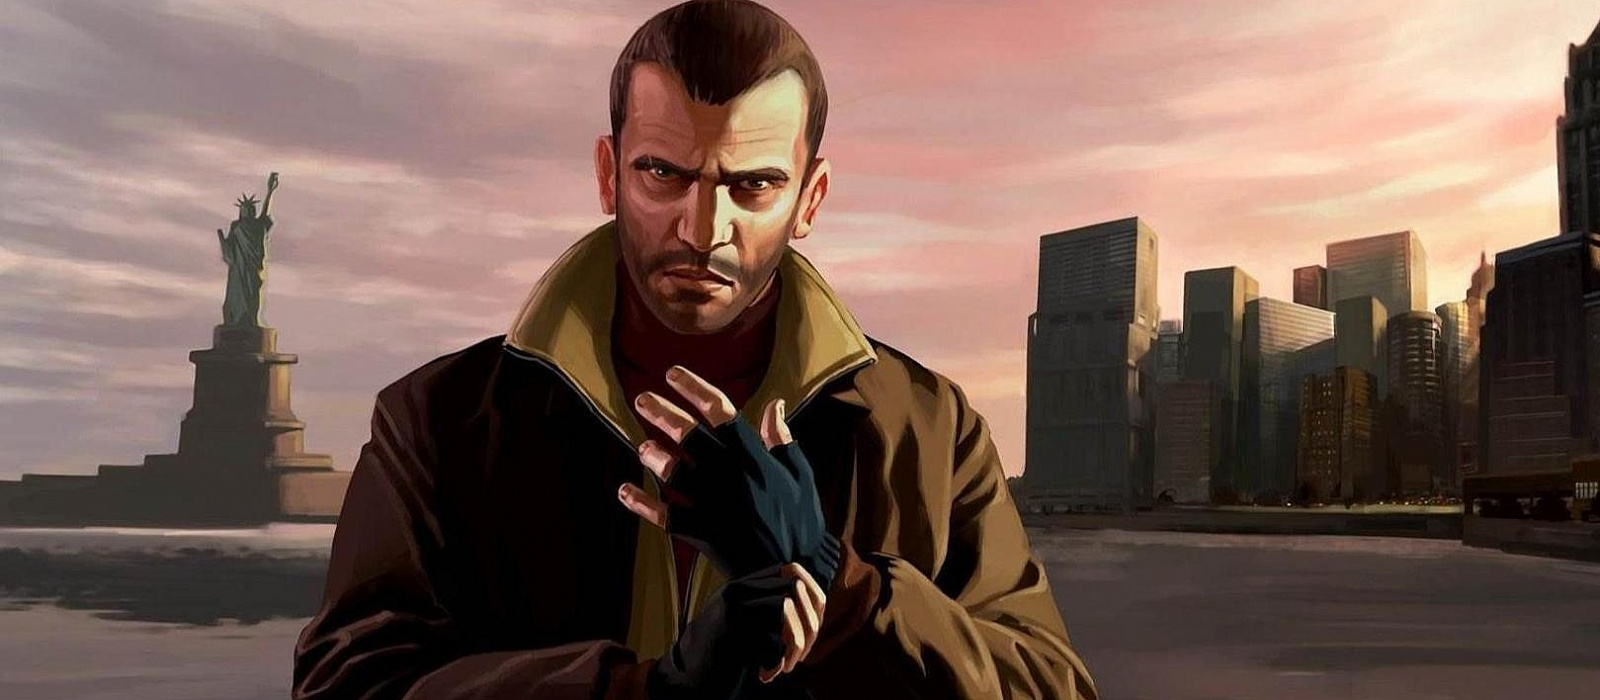 This mod brings multiplayer back to GTA 4. And it even works on Windows XP